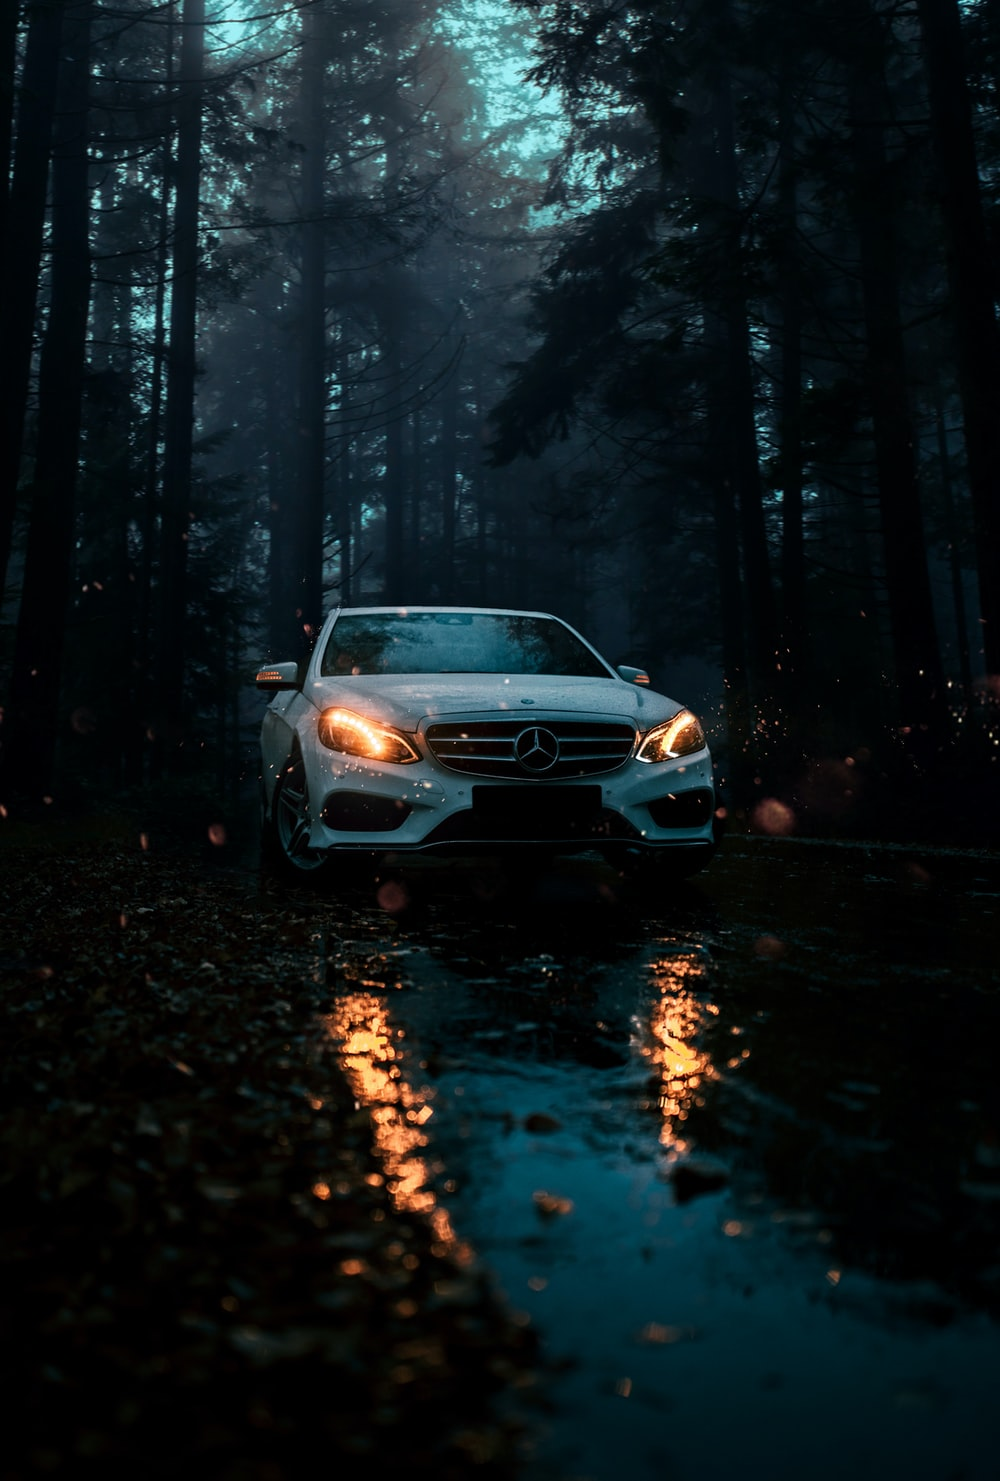 white car on road in between trees during night time